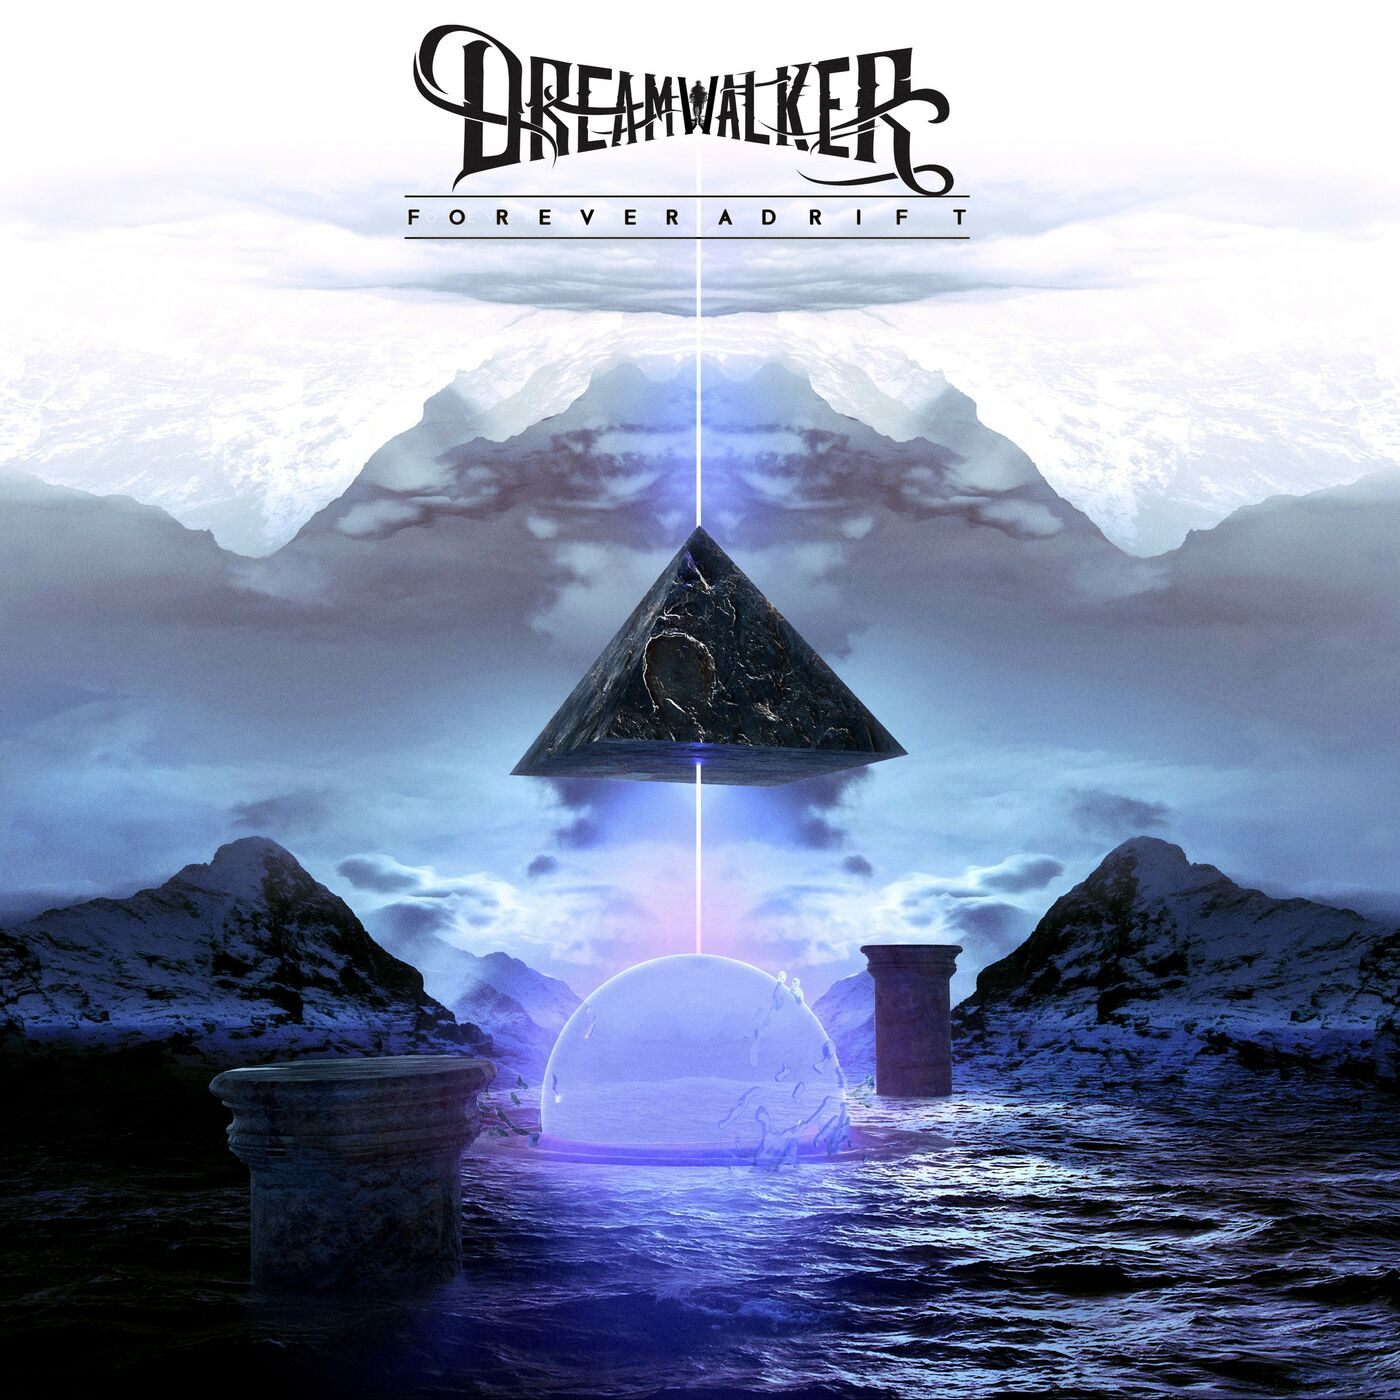 Dreamwalker - Forever Adrift [single] (2020)